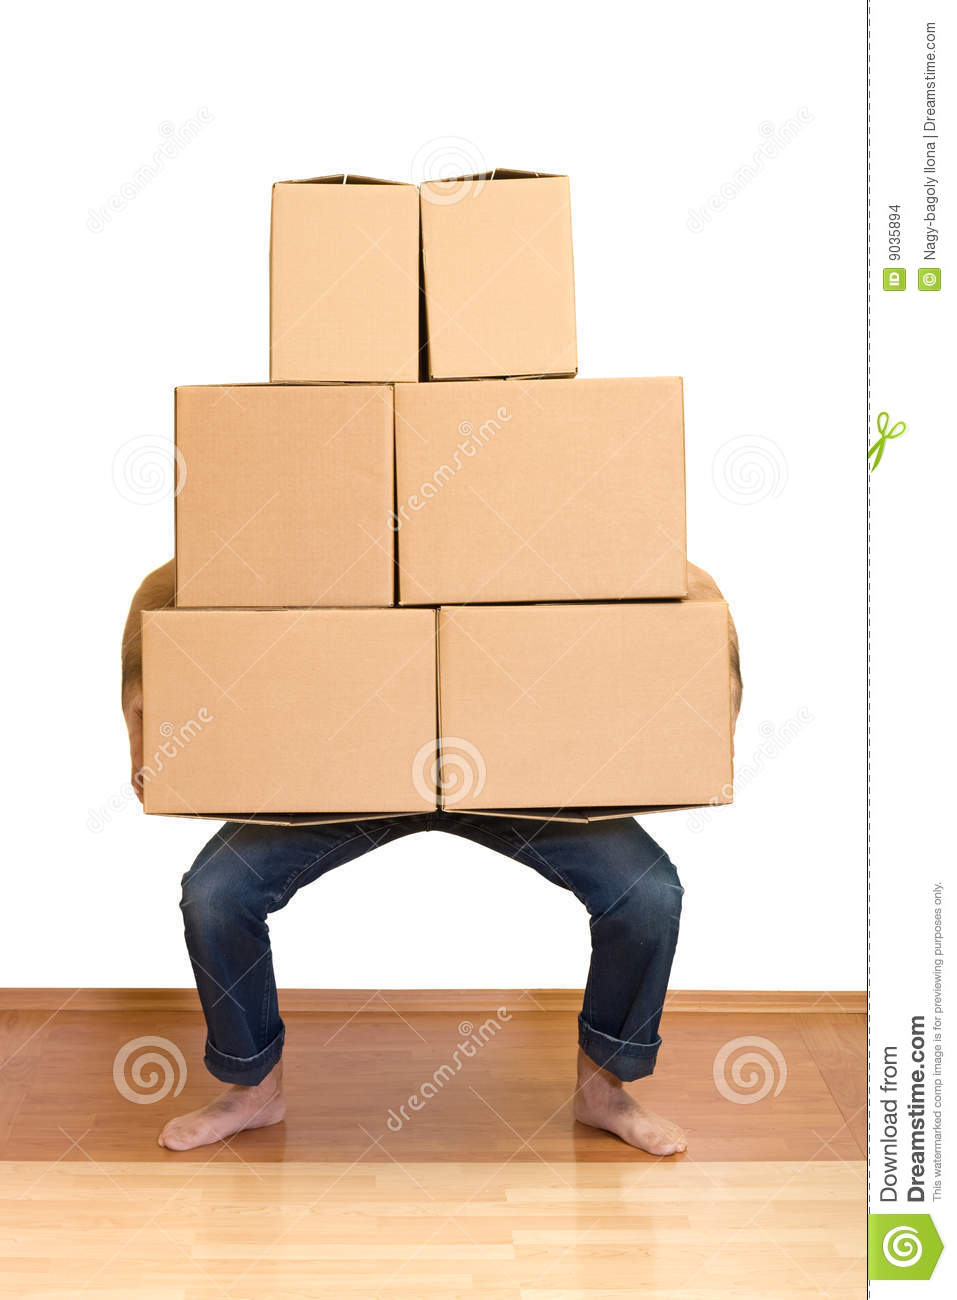 Man Struggling With Lots Of Cardboard Boxes Stock Photo